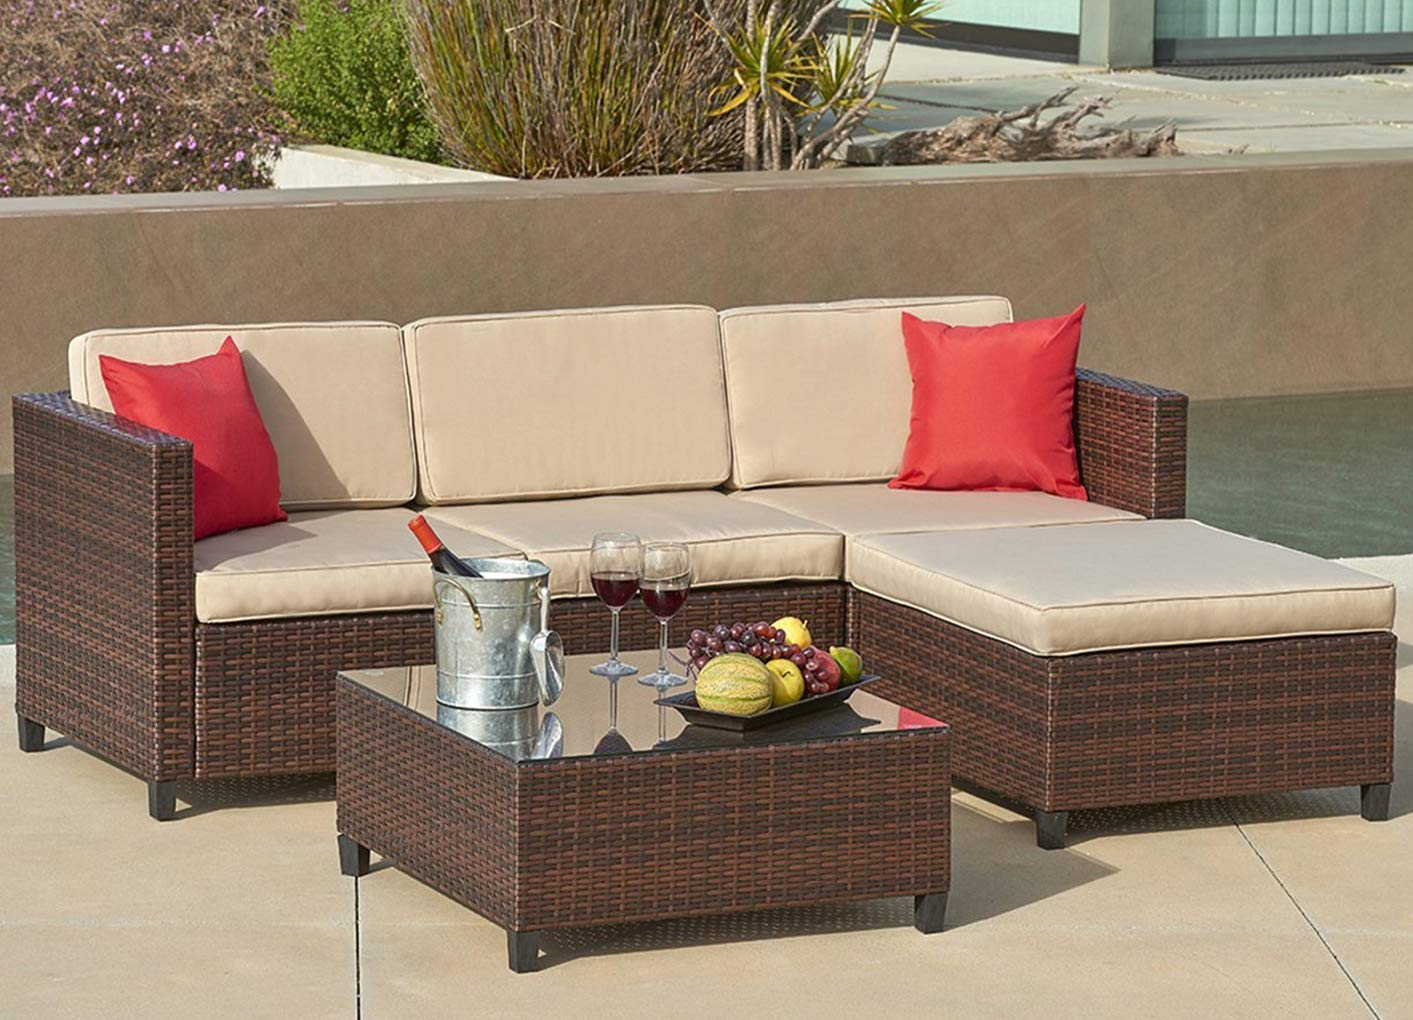 Beautiful Suncrown Outdoor Furniture Sectional Sofa (5 Piece Set) All Weather Brown  Checkered